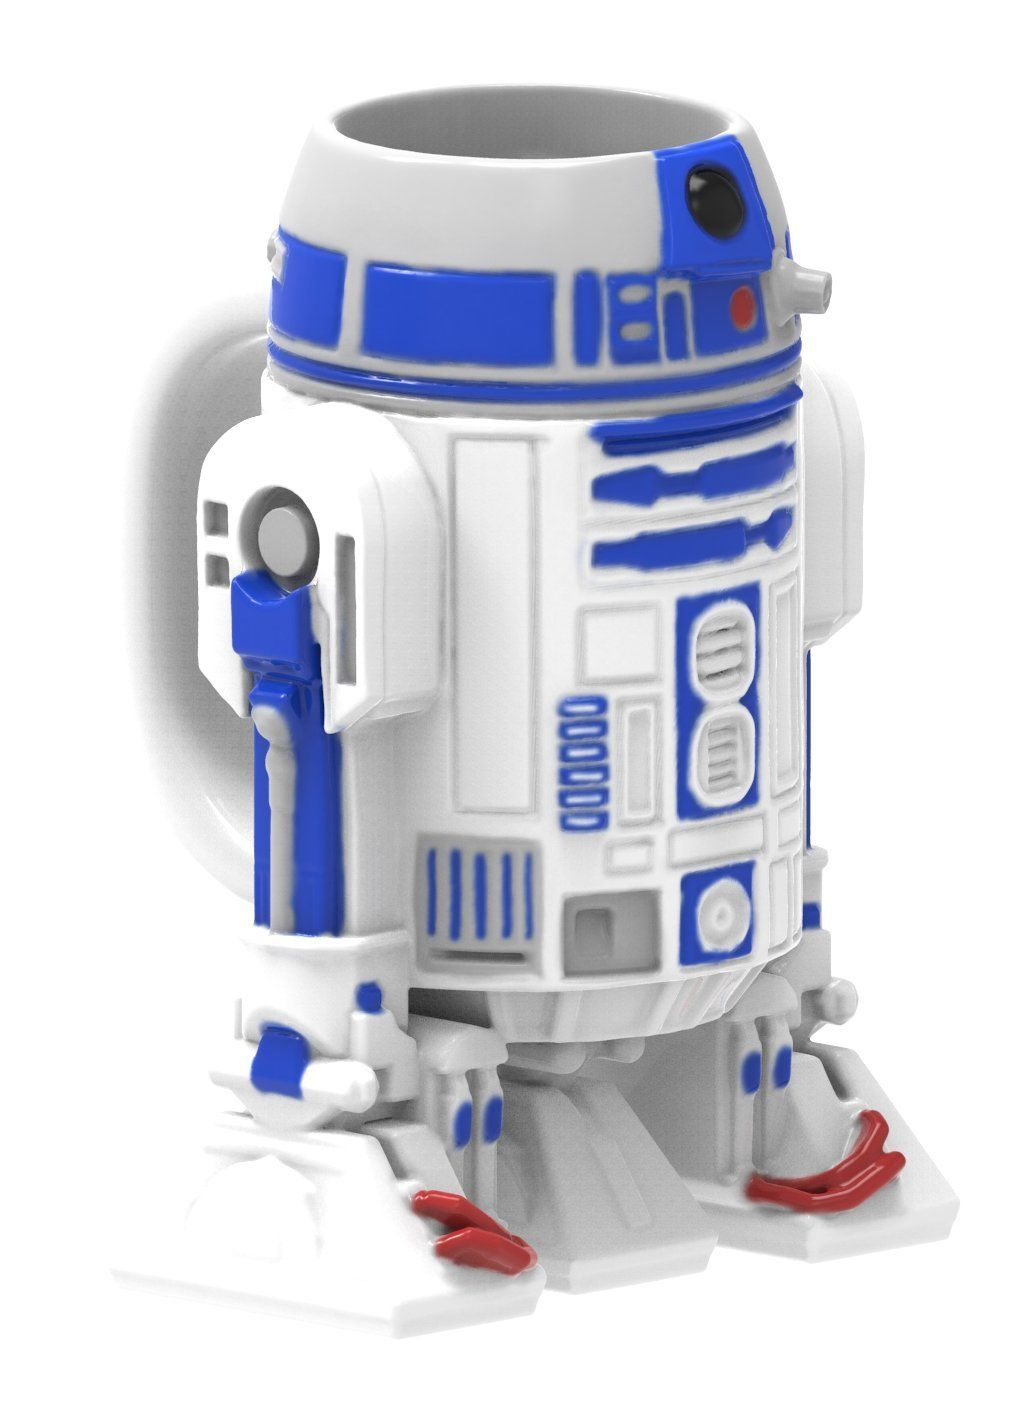 Amazon Com Zak Designs Sculpted Ceramic Mug In Shape Of Bb 8 From Star Wars The Force Awa Star Wars Collection Star Wars R2d2 Star Wars Merchandise